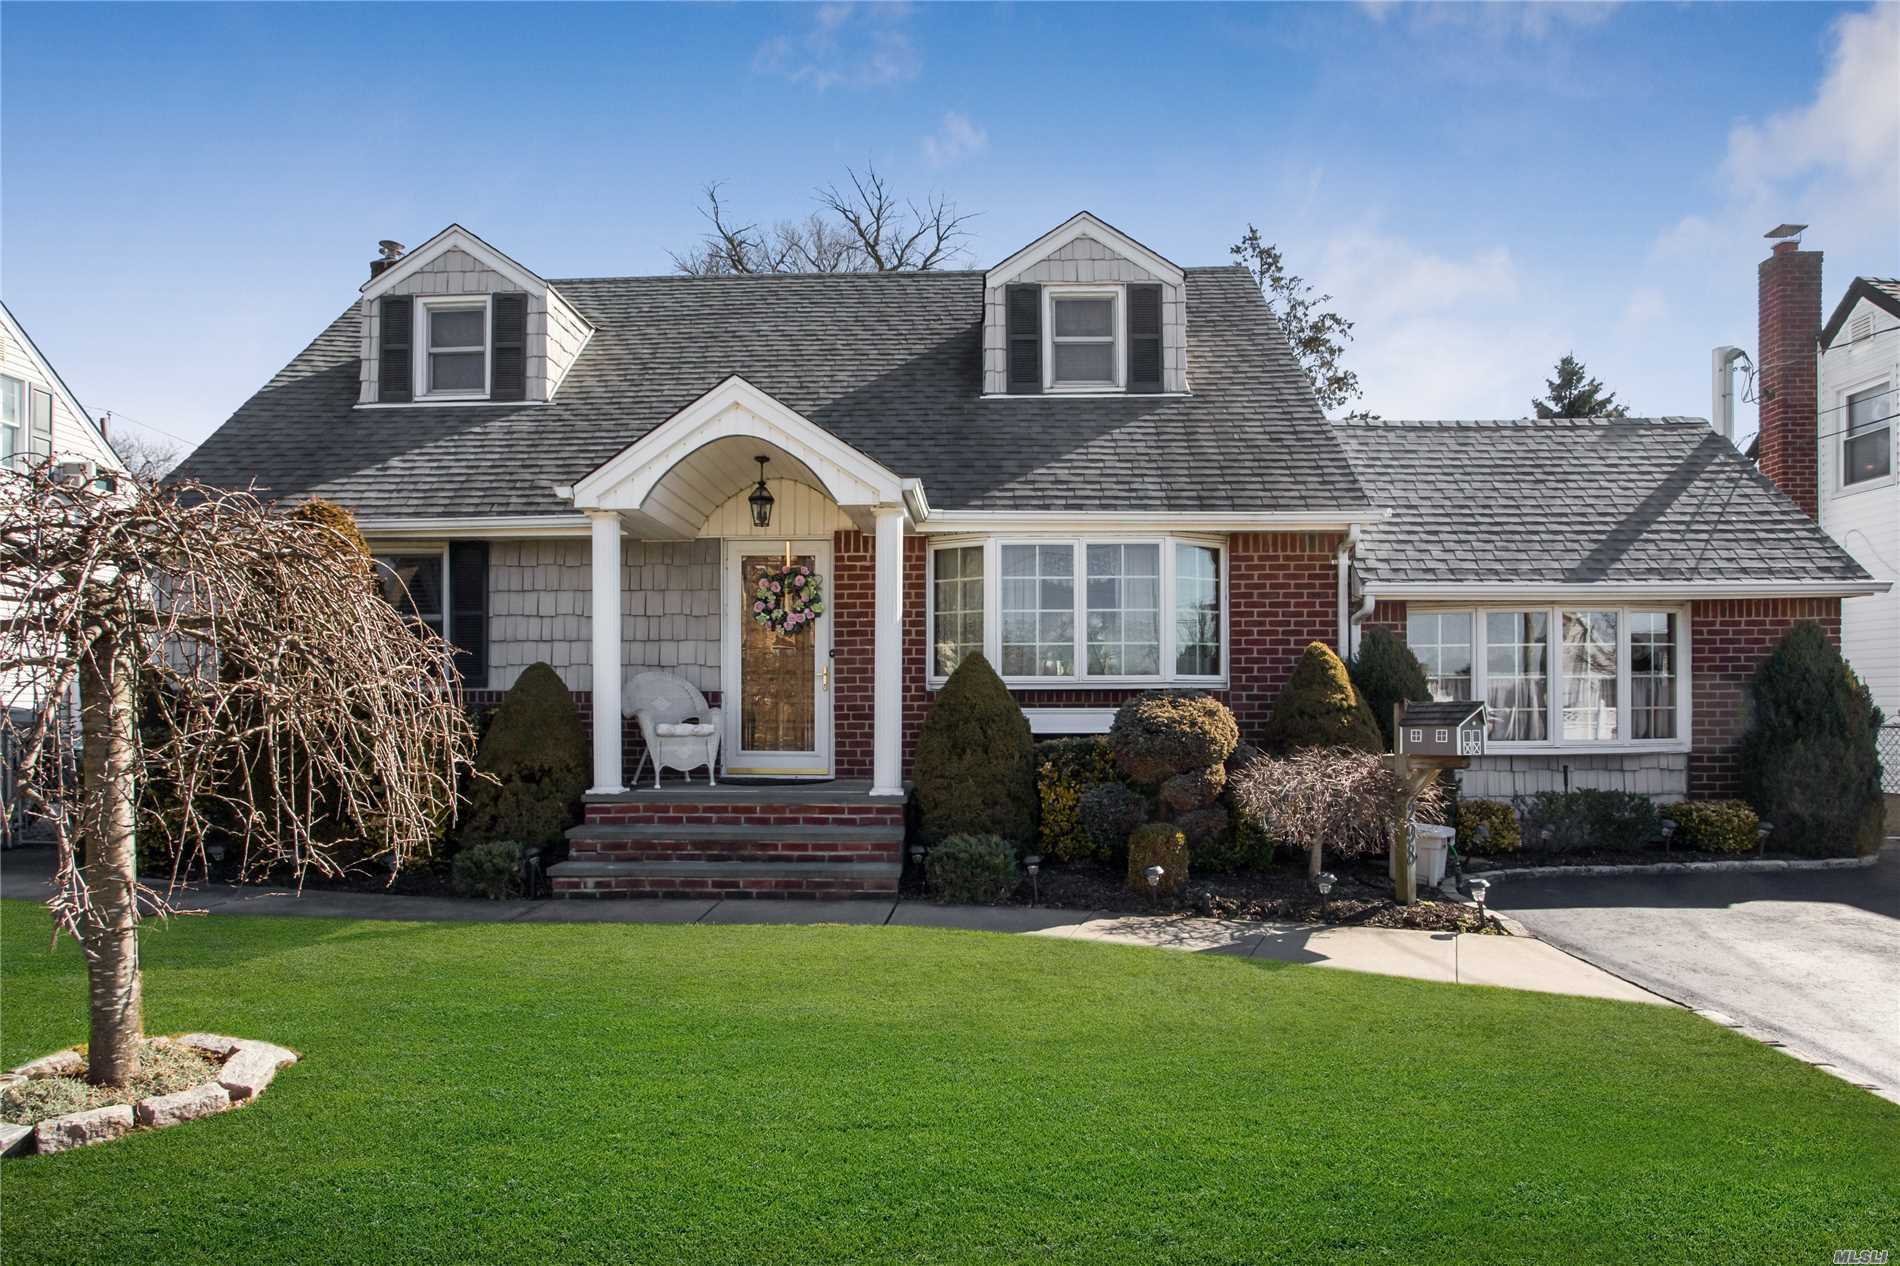 LOCATION, LOCATION, LOCATION! Beautiful 4 BR, 2 FBA, Wide Line Cape in Desirable Franklin Square Area. North of Hempstead Turnpike, Quiet Dead End Street.